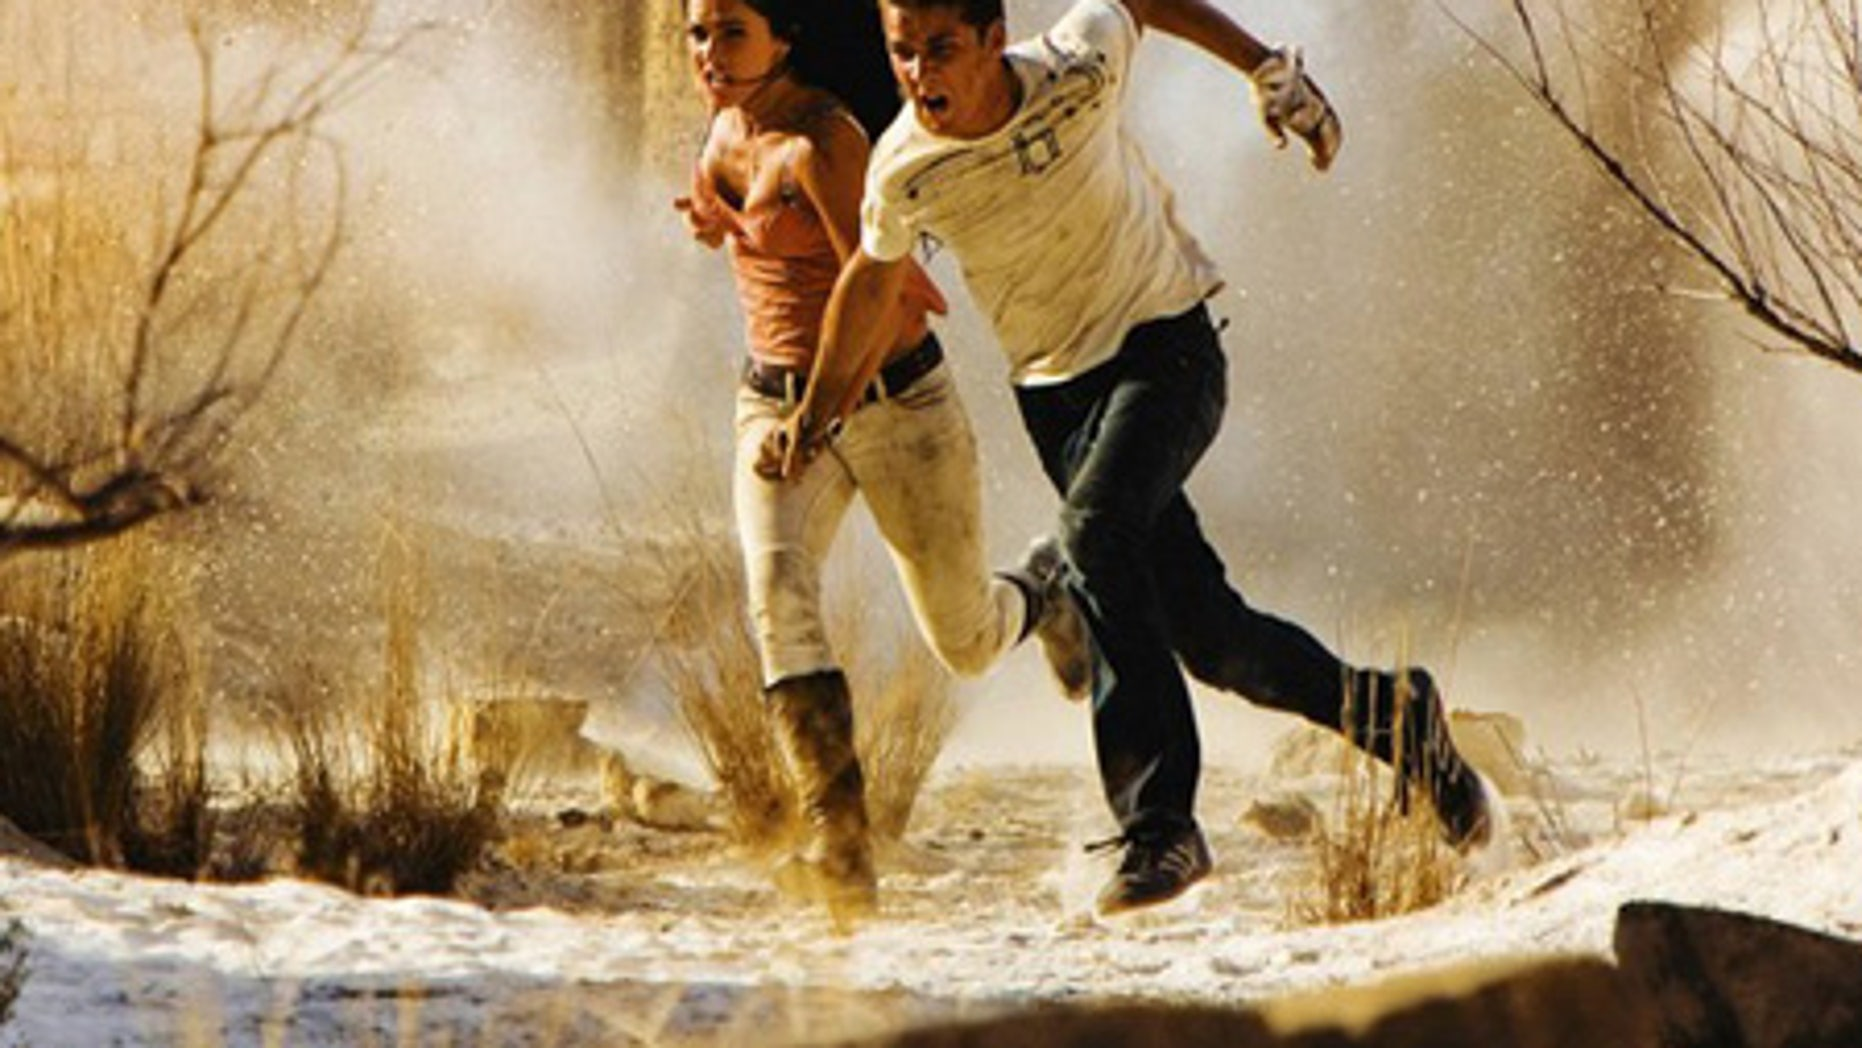 """Actors Megan Fox (L) and Shia LaBeouf are shown in a scene from the Paramount Pictures film """"Transformers: Revenge of the Fallen"""" in this  publicity photo."""